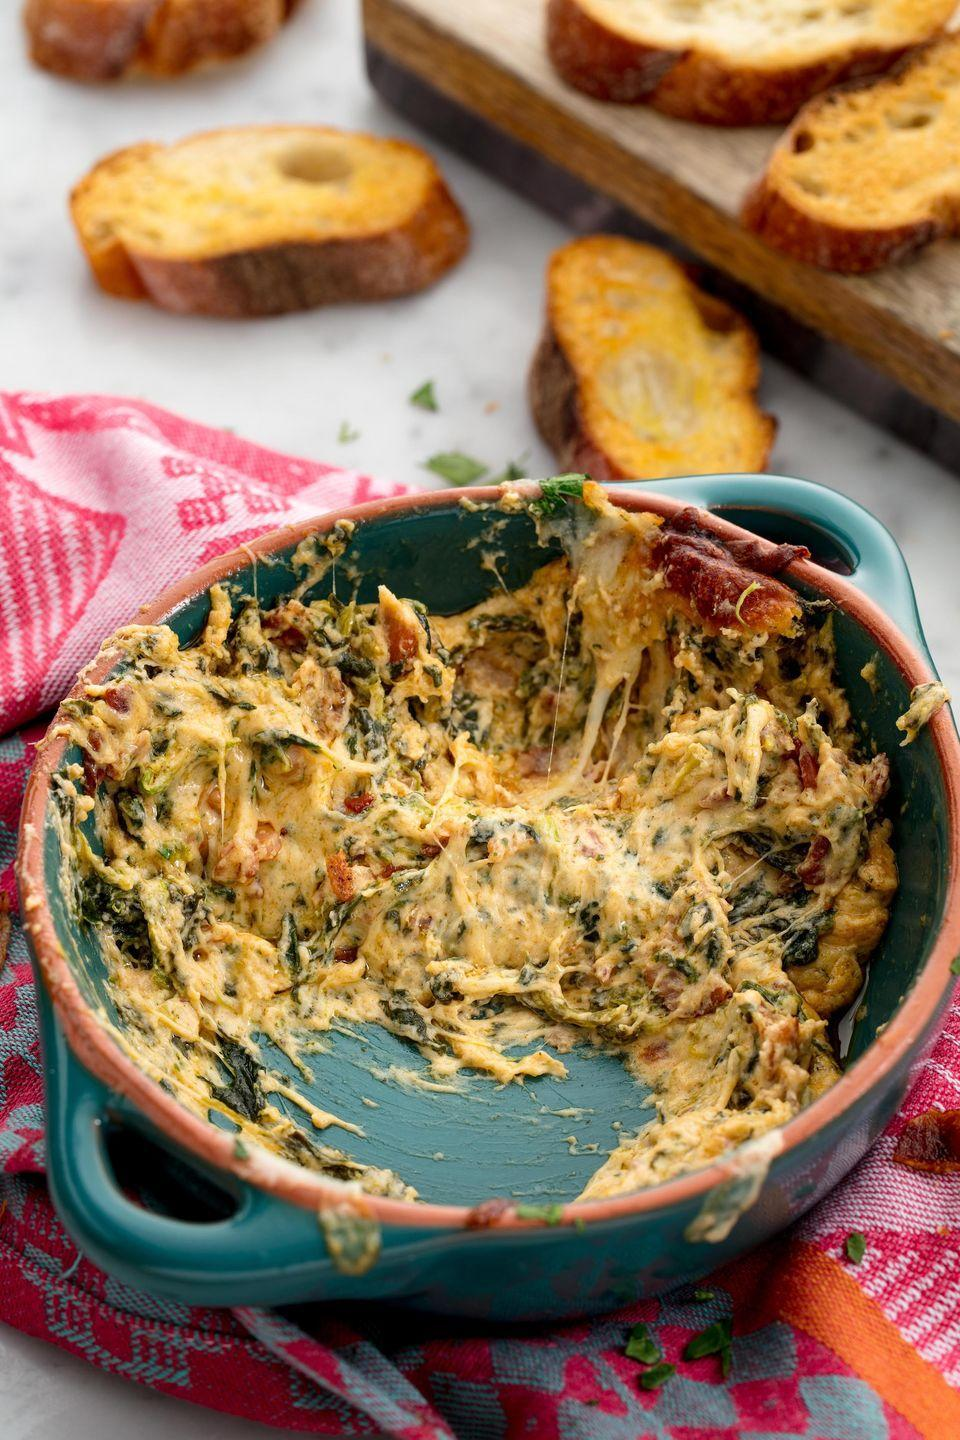 "<p>All the cheesy, bacon-y goodness a holiday deserves.</p><p>Get the recipe from <a href=""https://www.delish.com/cooking/recipe-ideas/recipes/a50161/bacon-spinach-dip-recipe/"" rel=""nofollow noopener"" target=""_blank"" data-ylk=""slk:Delish"" class=""link rapid-noclick-resp"">Delish</a>.</p>"